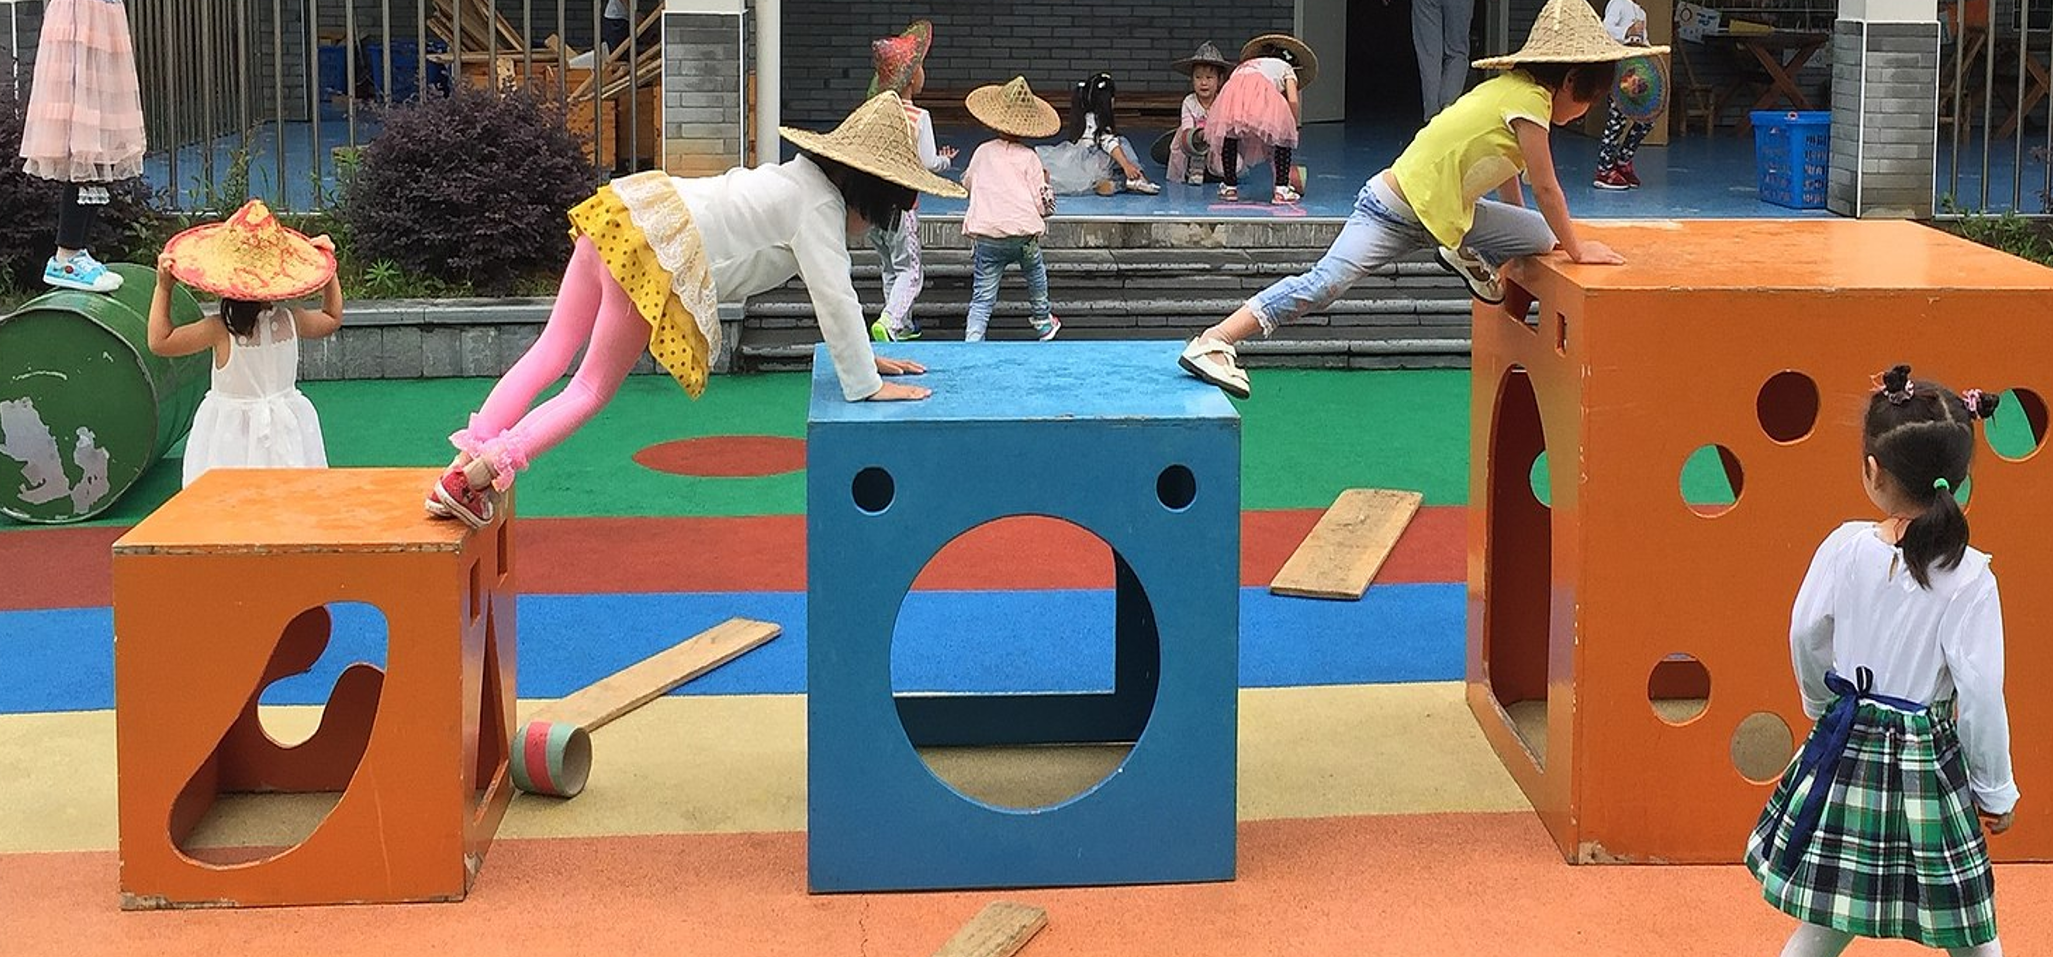 Children in Anji, China interacting with Anji Play's Climbing Cubes